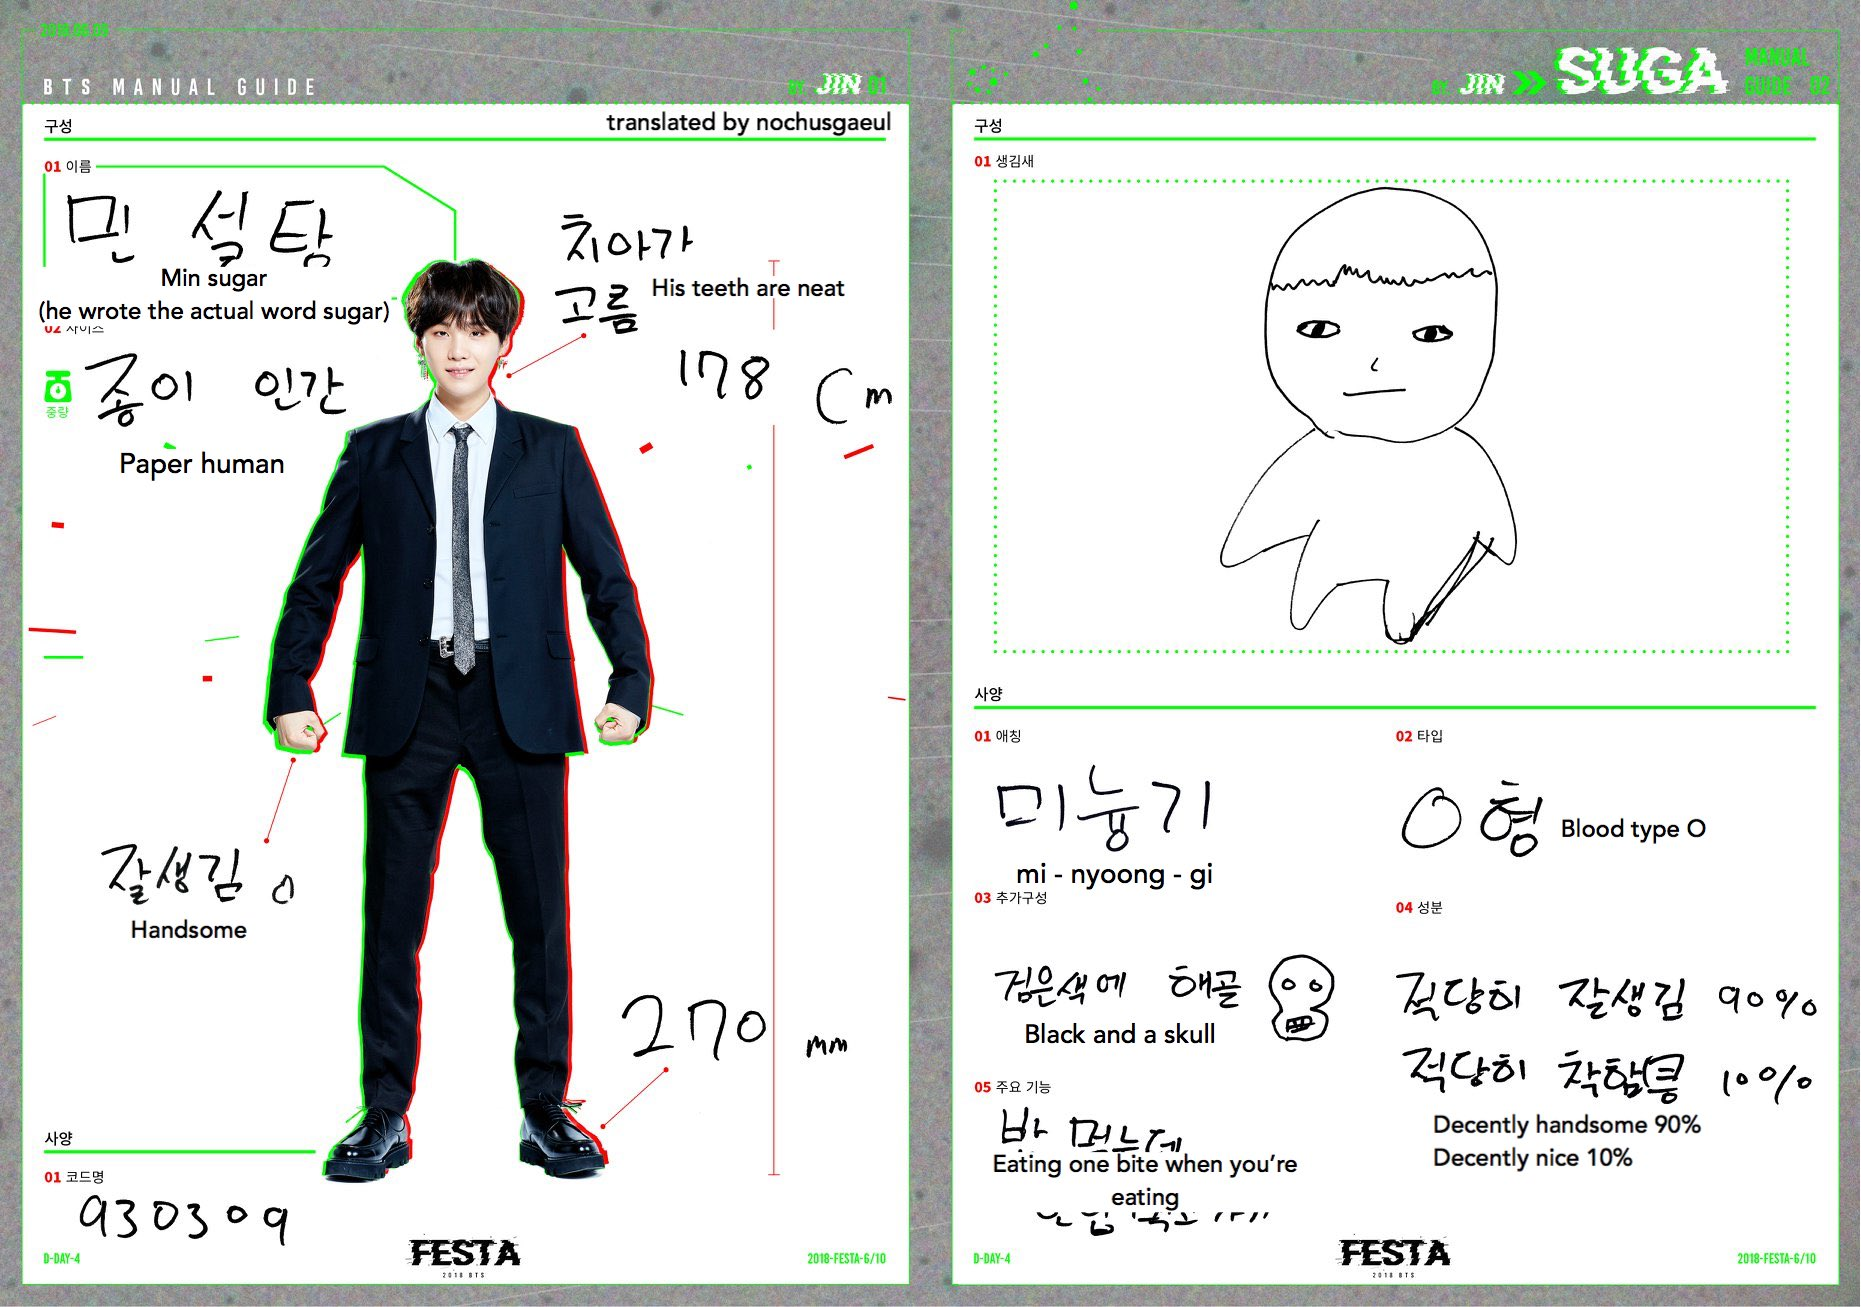 cof dfn8ue9uwaaj1df - [Picture] 2018 BTS FESTA : BTS MANUAL GUIDE [180809]